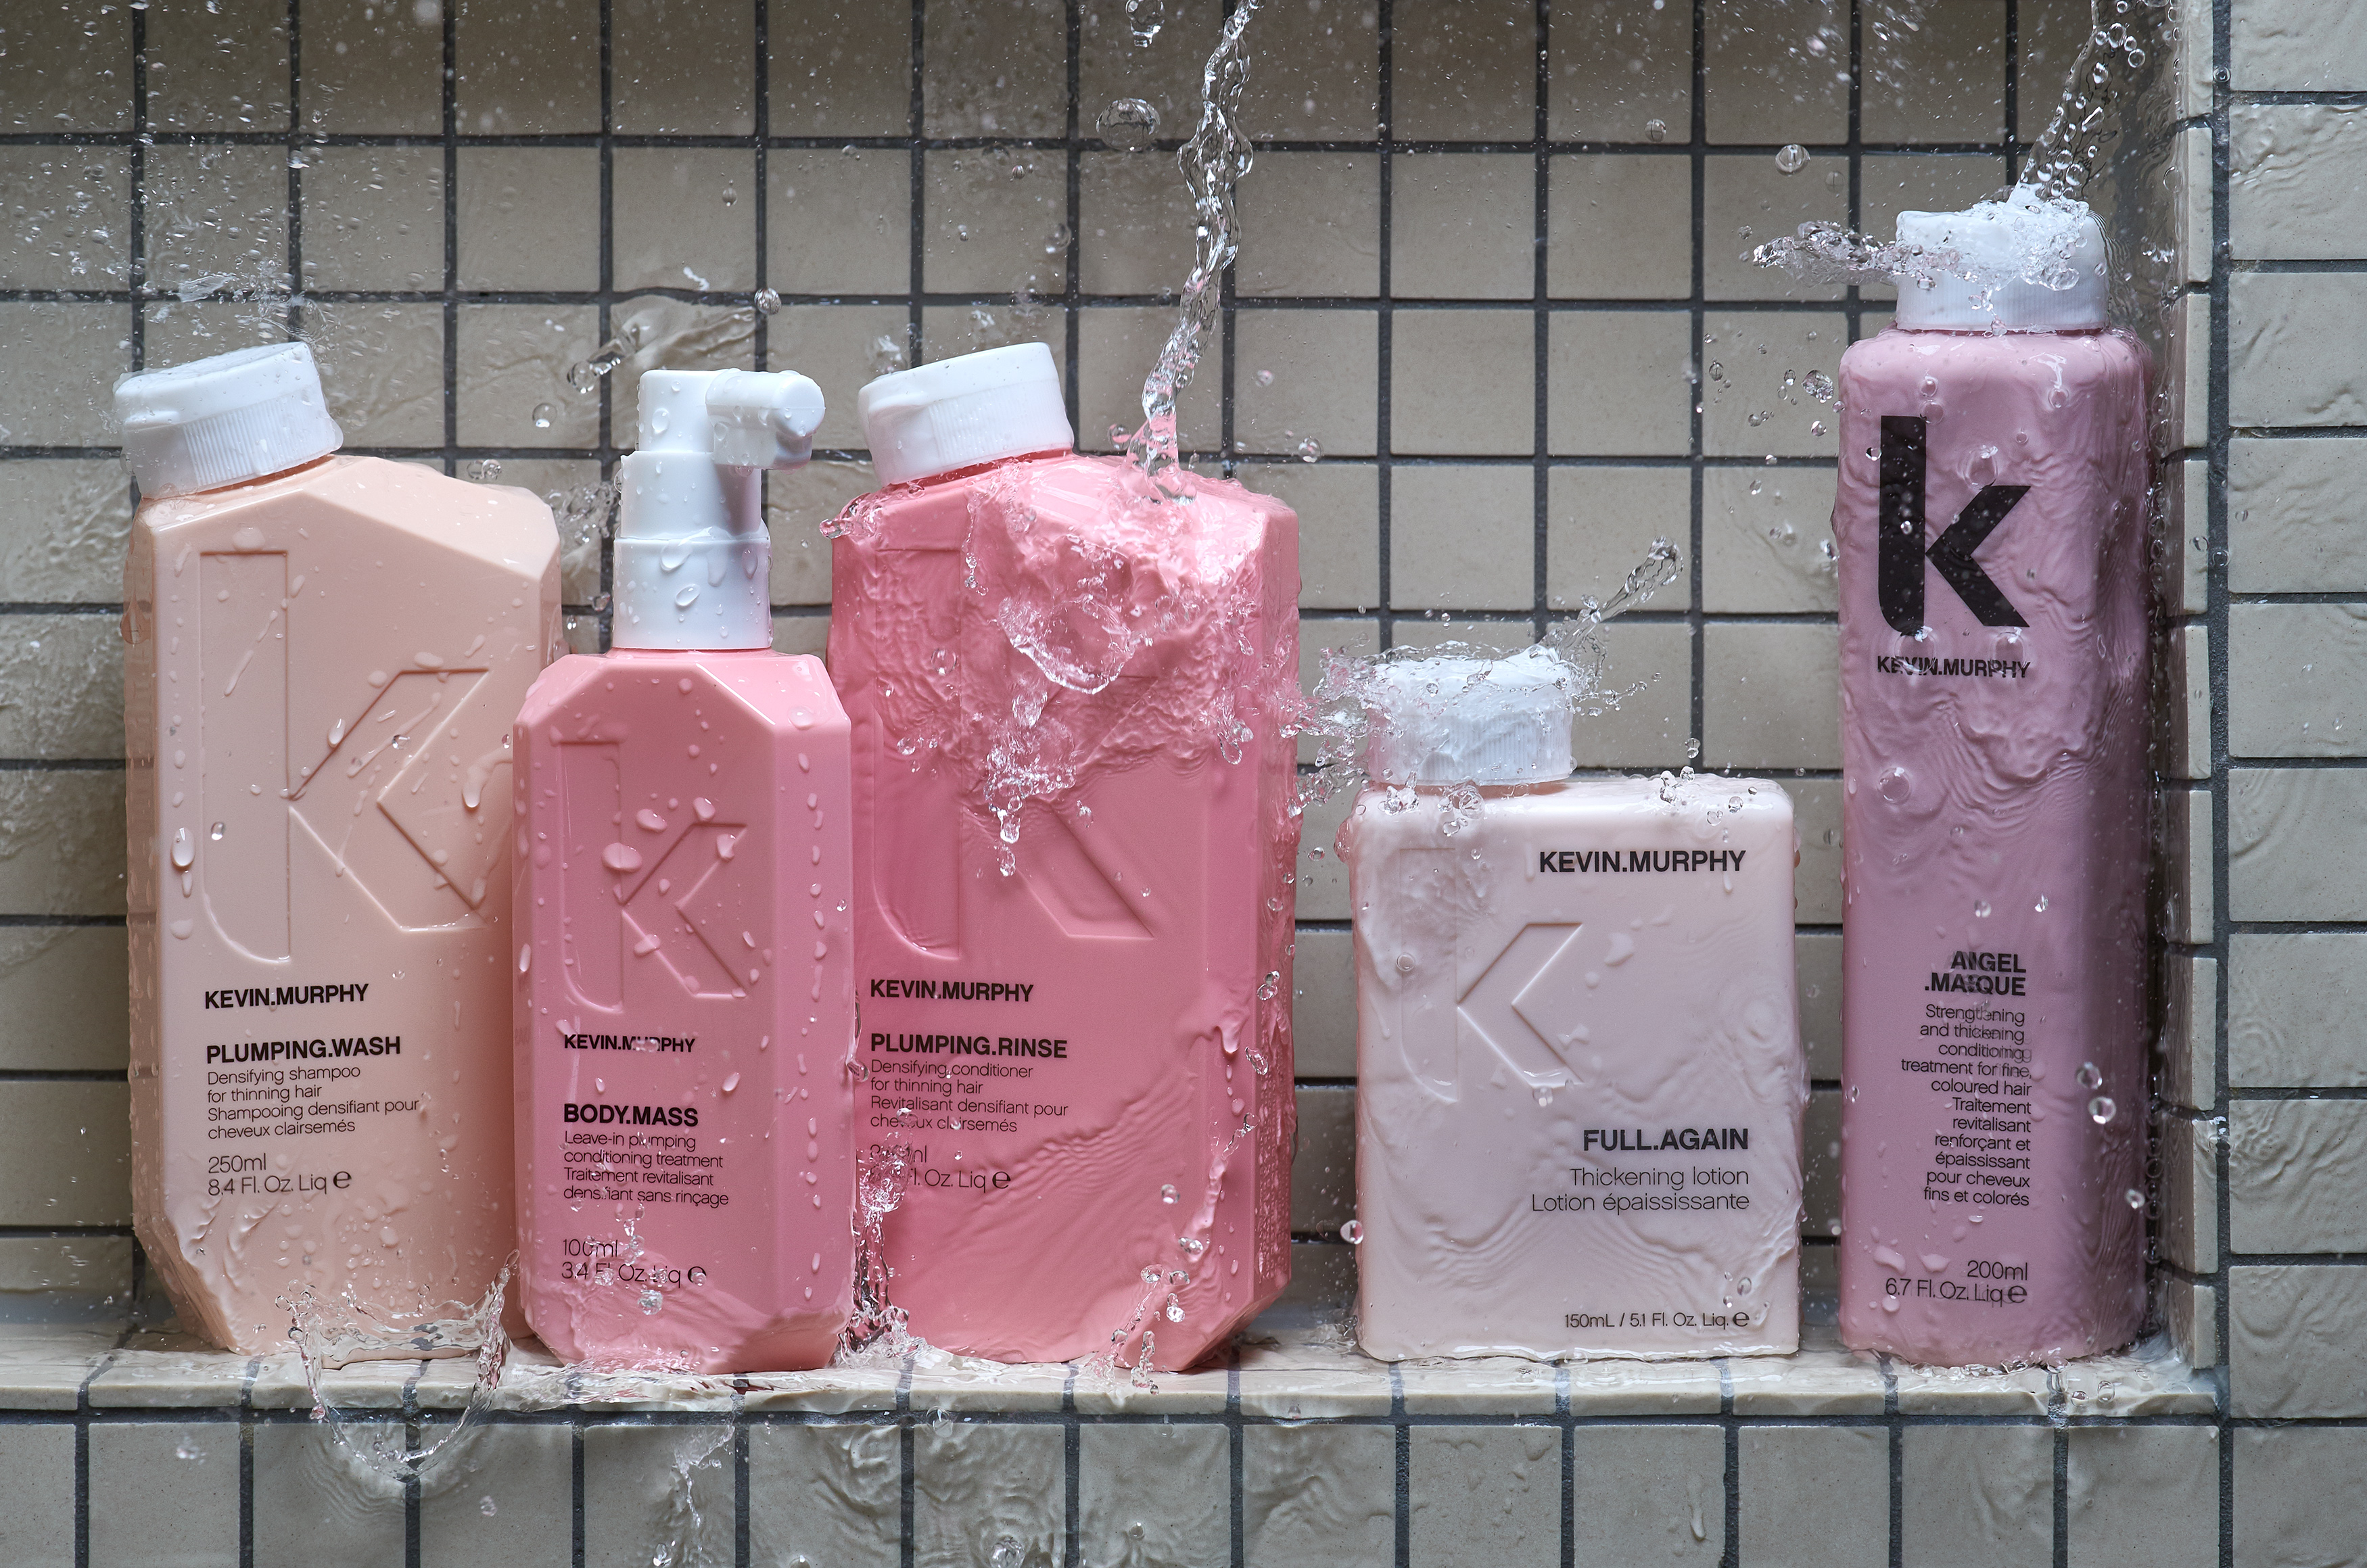 styling products from kevin murphy standing in a shower niche photo location, water expoding watterdrops